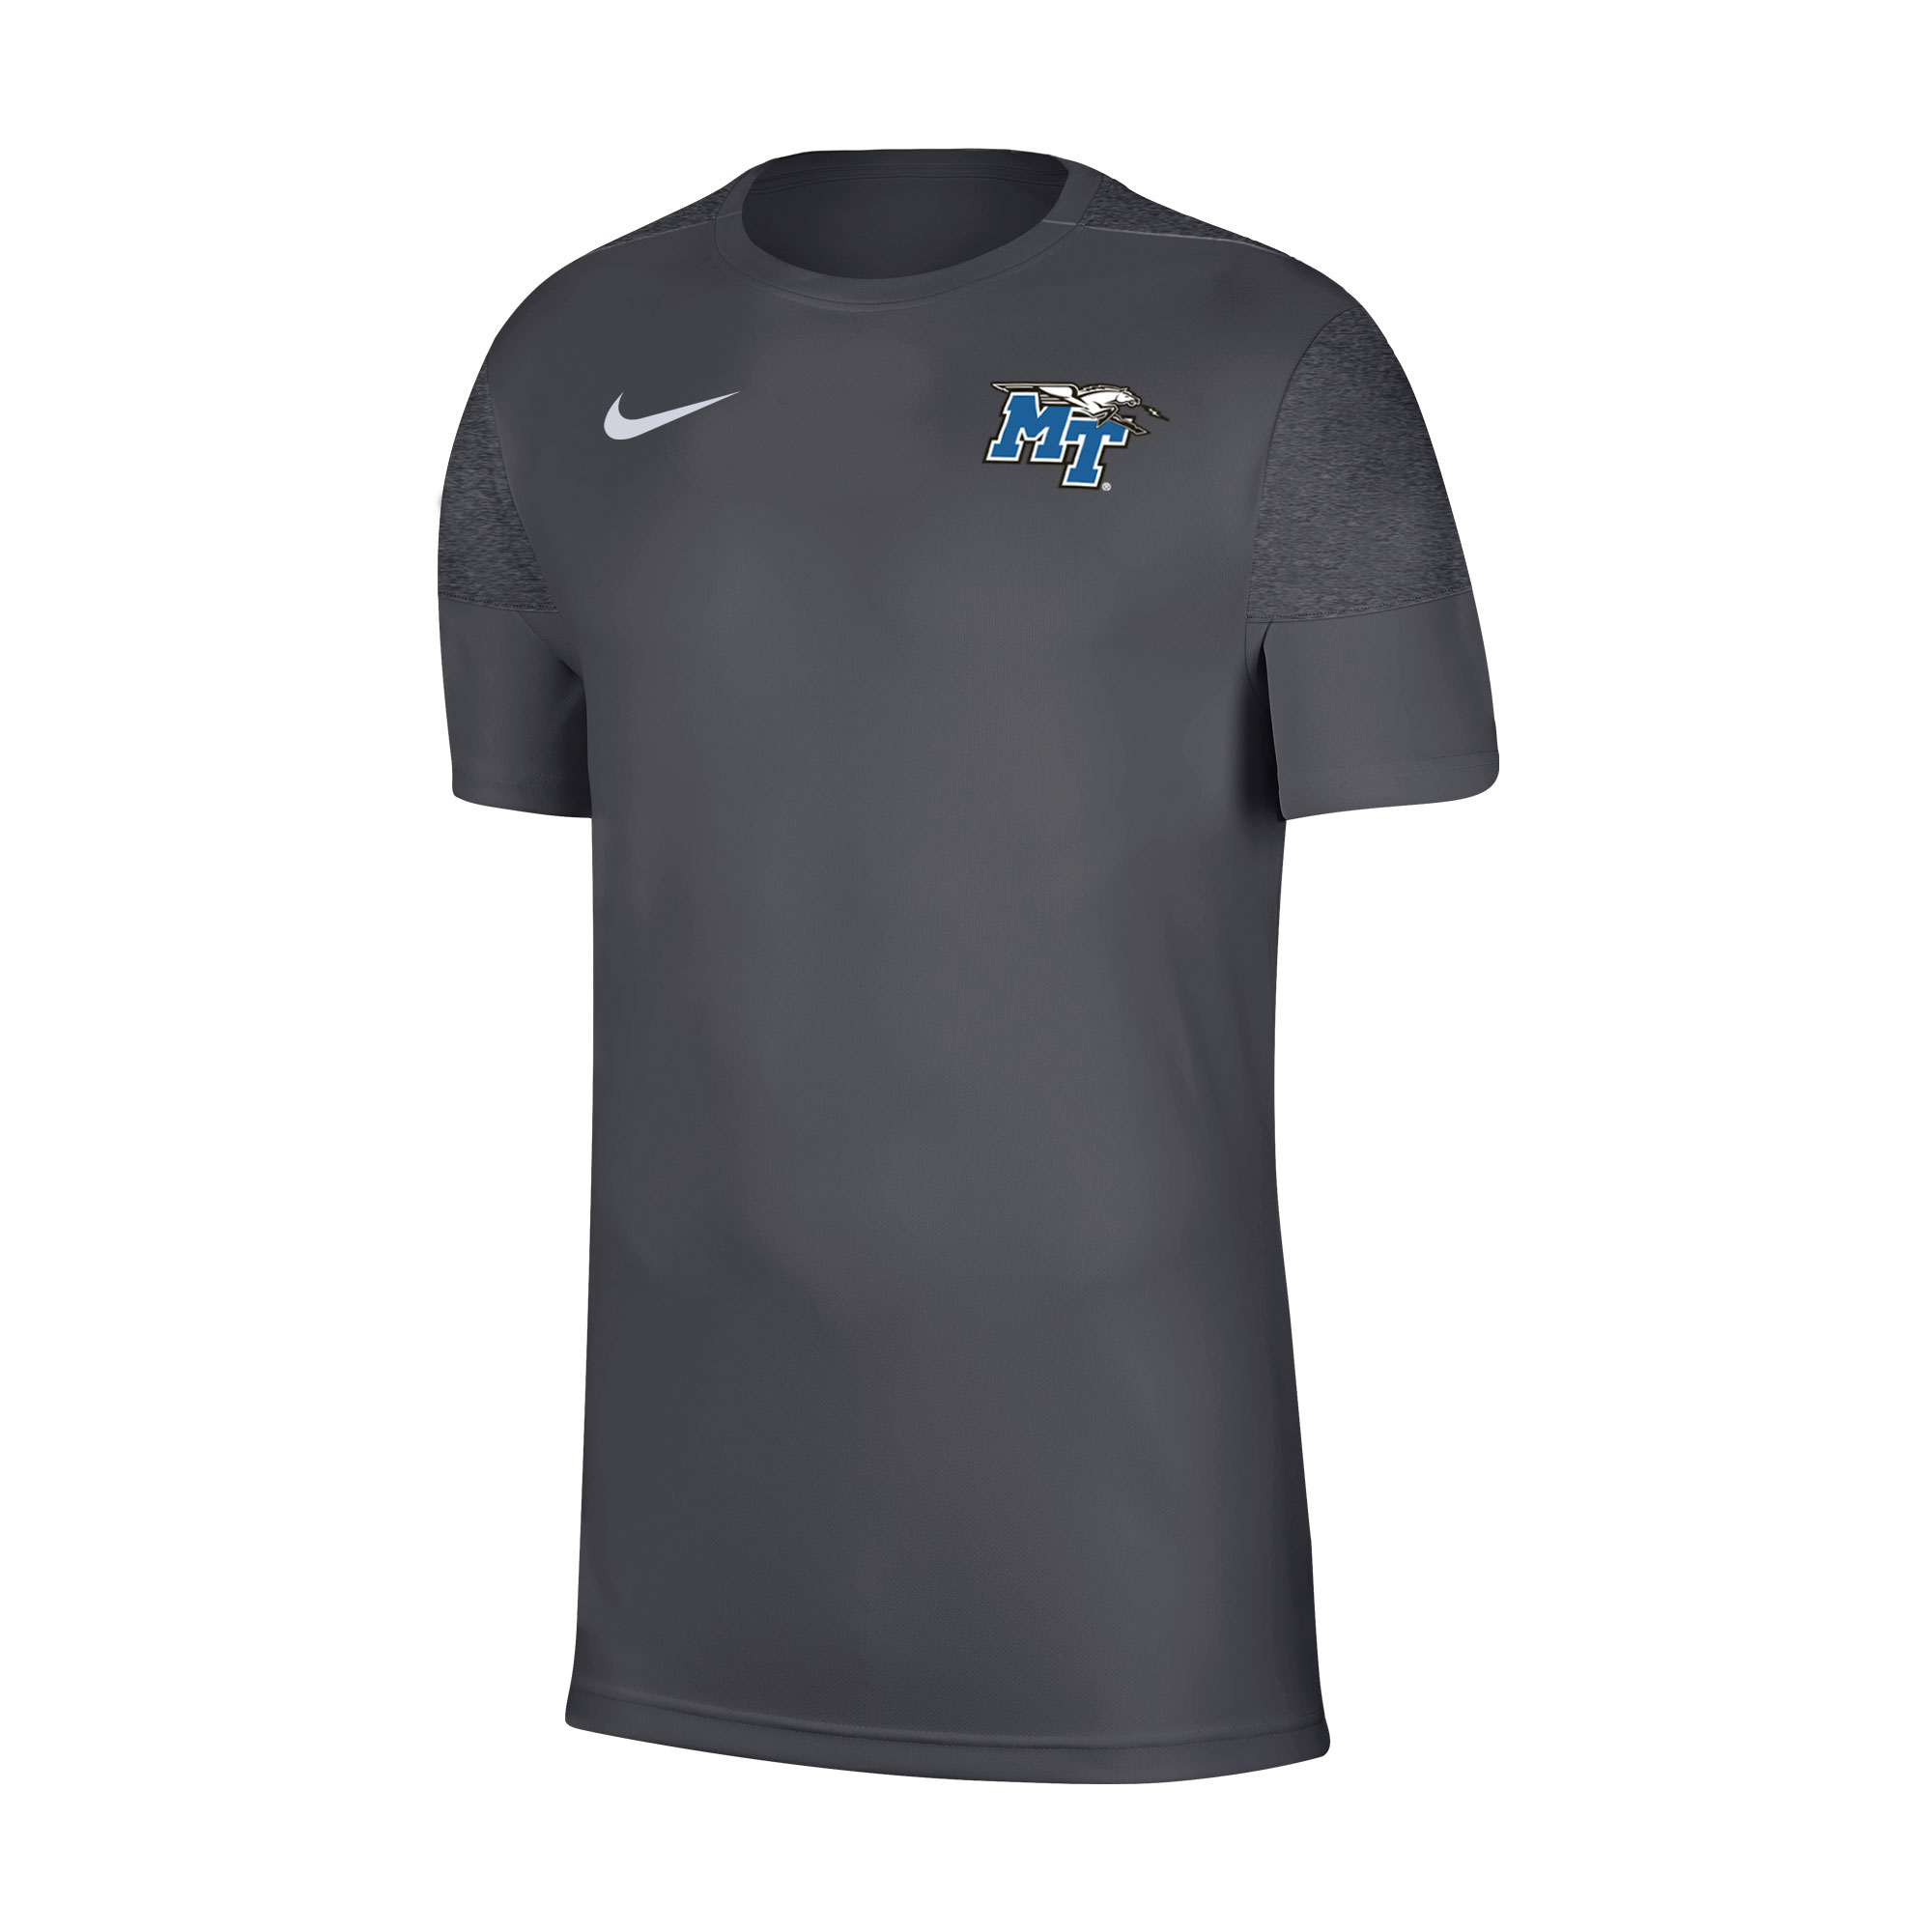 MT Logo w/ Lightning Coach Short Sleeve Nike® Shirt